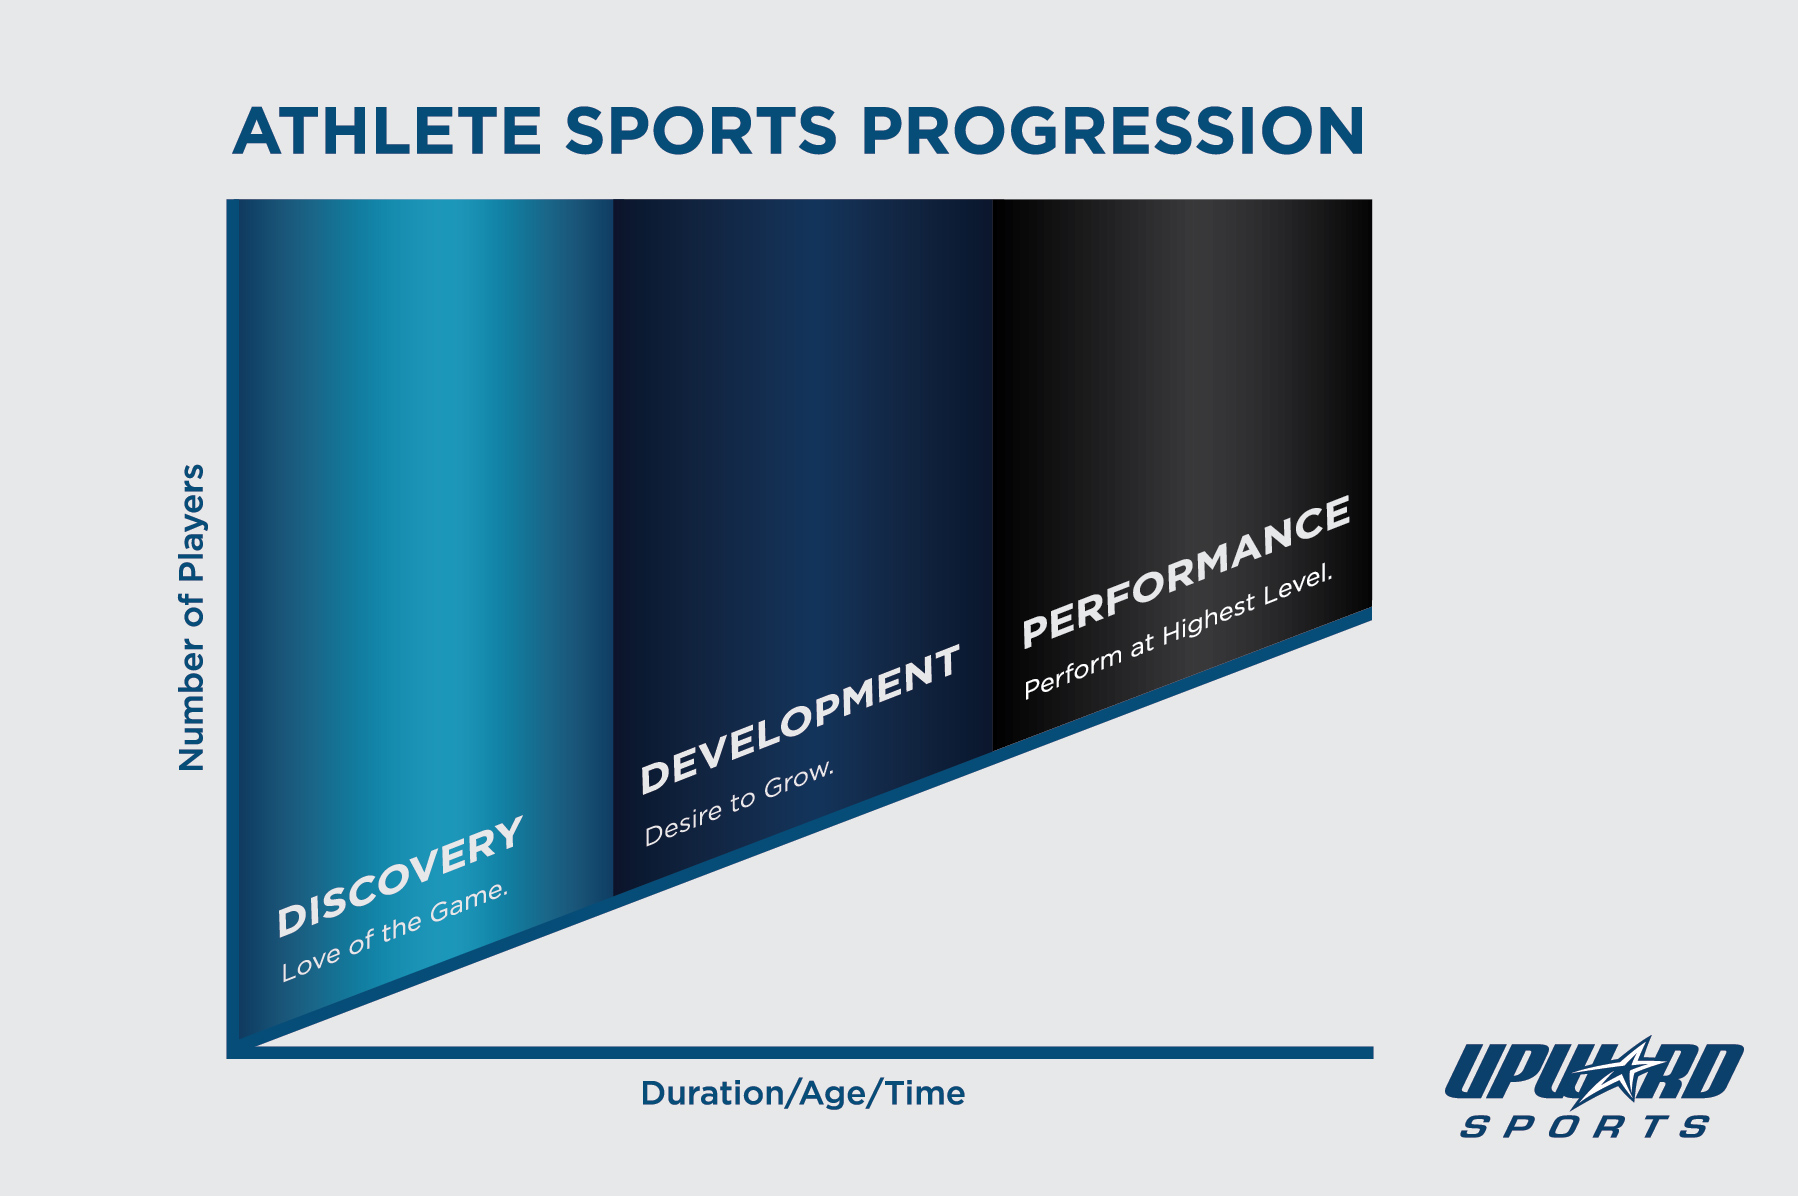 The Athlete Sports Progression